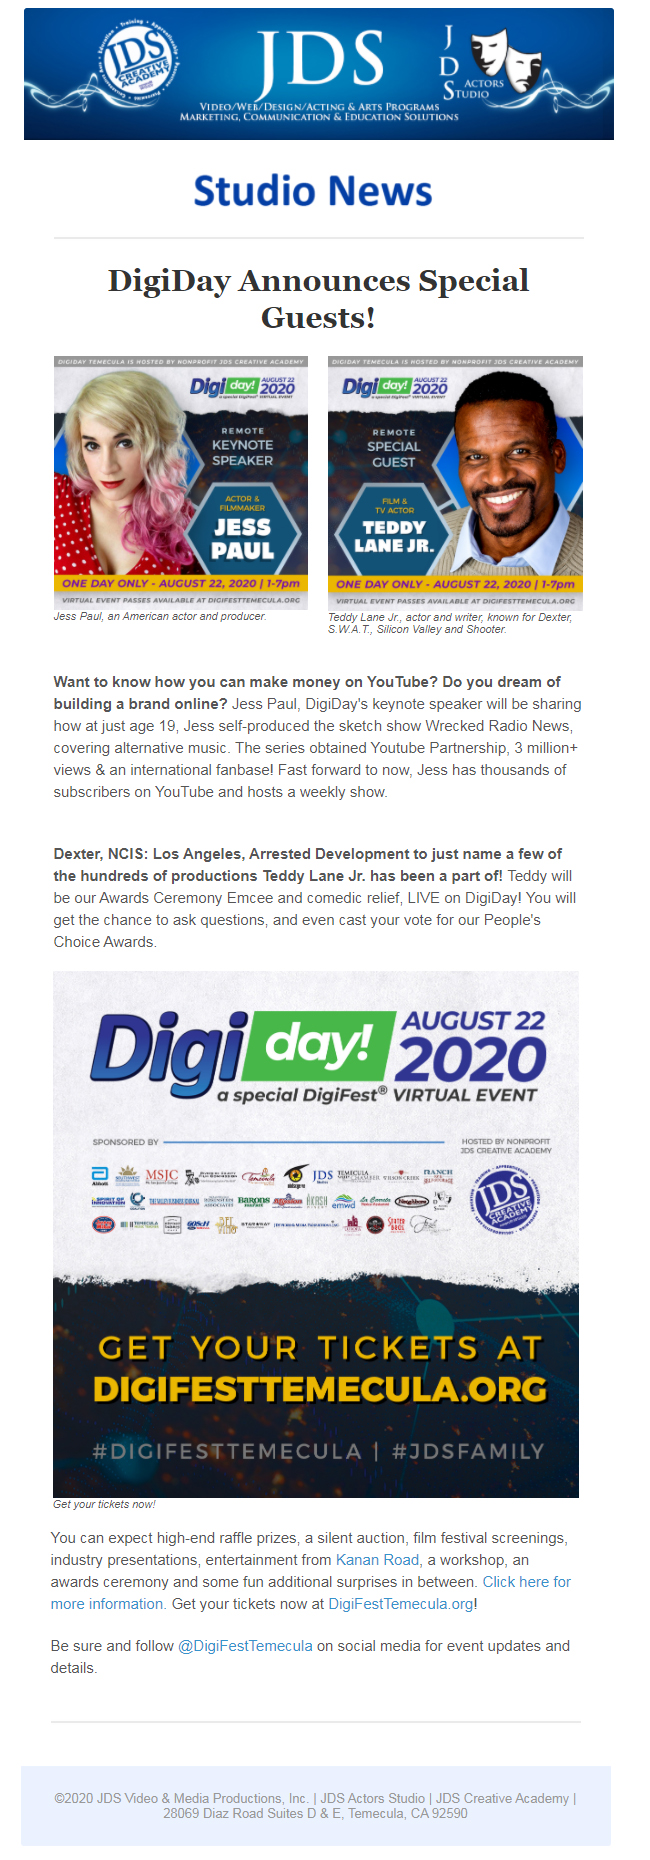 DigiDay 2020, Announces A-List Guests and Event Surprises